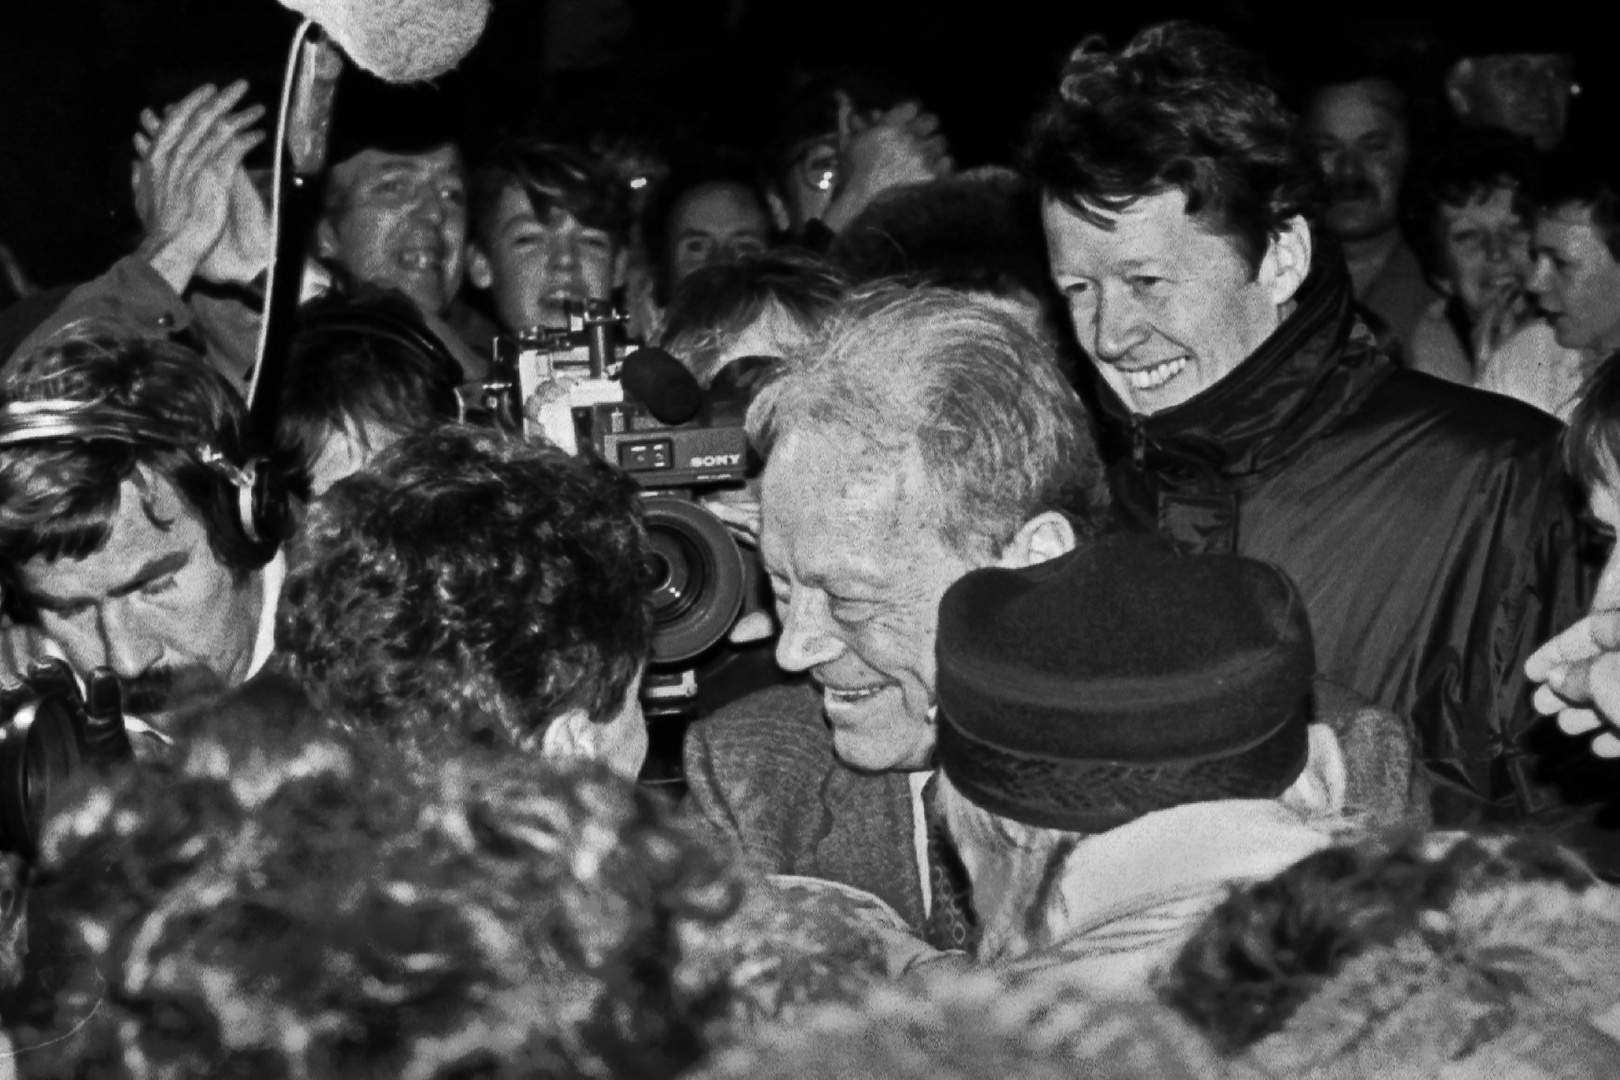 Willy Brandt 1989 in Rostock